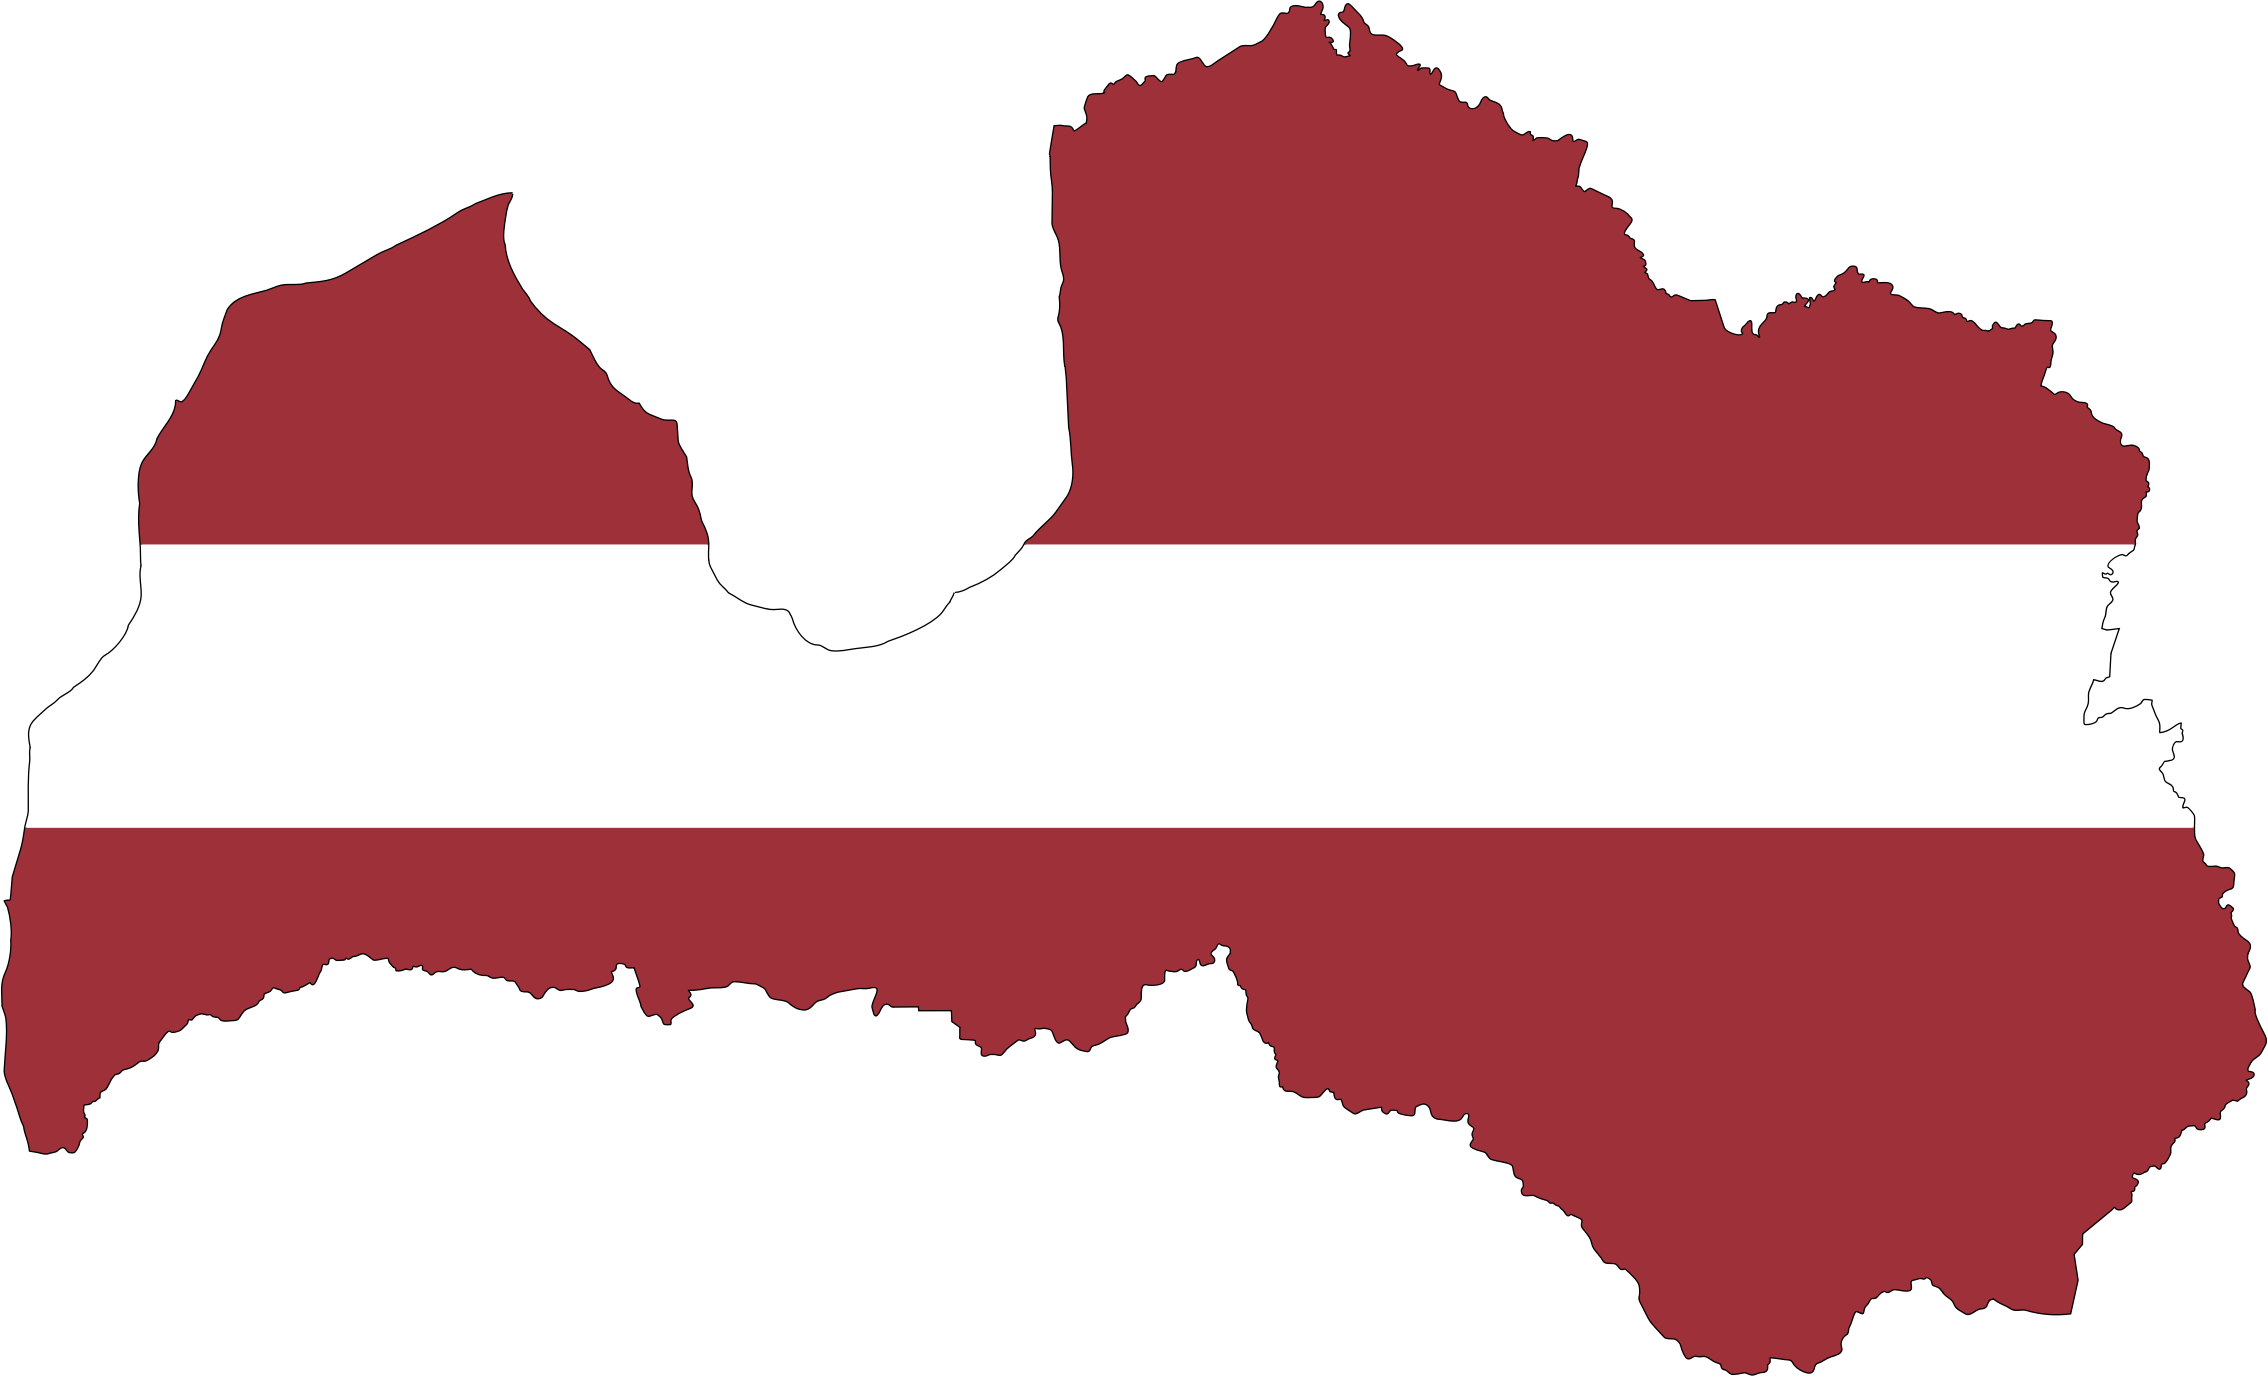 Latvia Map Flag With Stroke by GDJ